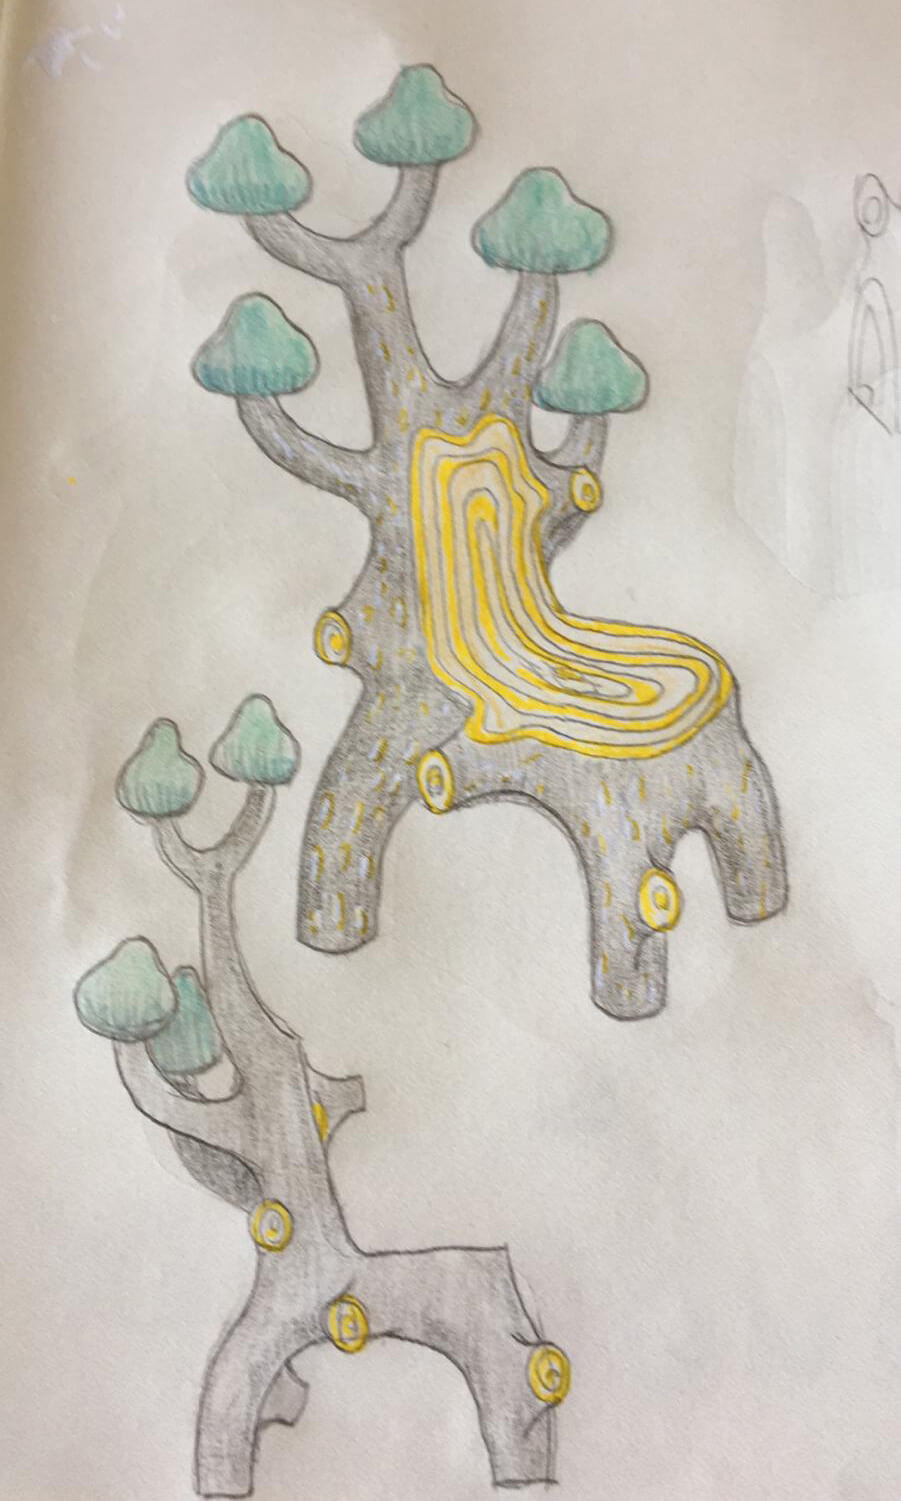 Conceptual sketch for the Forest Chair by Marcantonio Raimondi Malerba, for Scarlet Splendour | Moments of Affection: Milanese Alliances (M.A.M.A.) | STIRworld